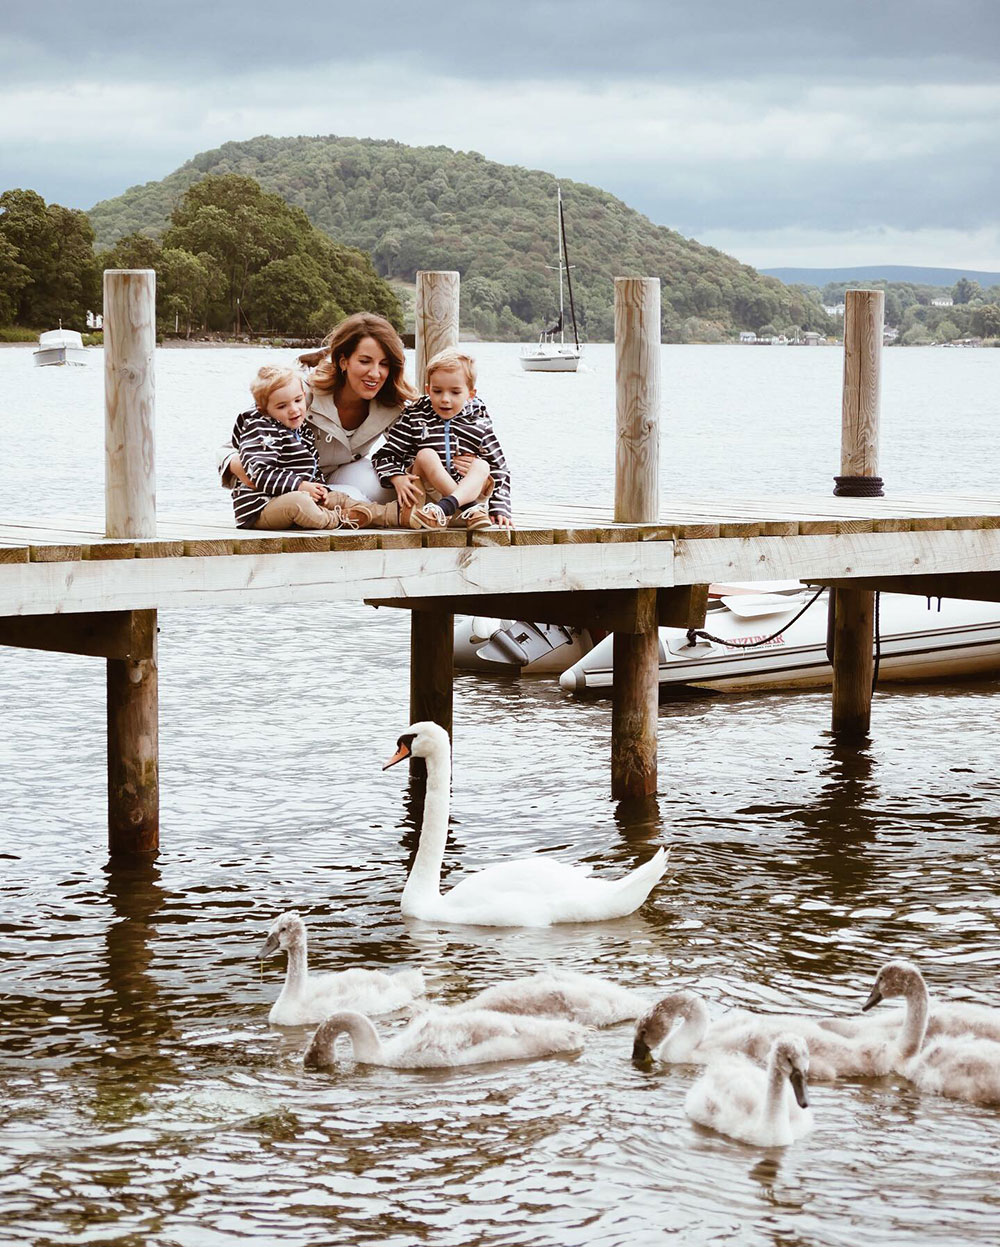 A swan and her sygnets watched by a family on the hotel jetty